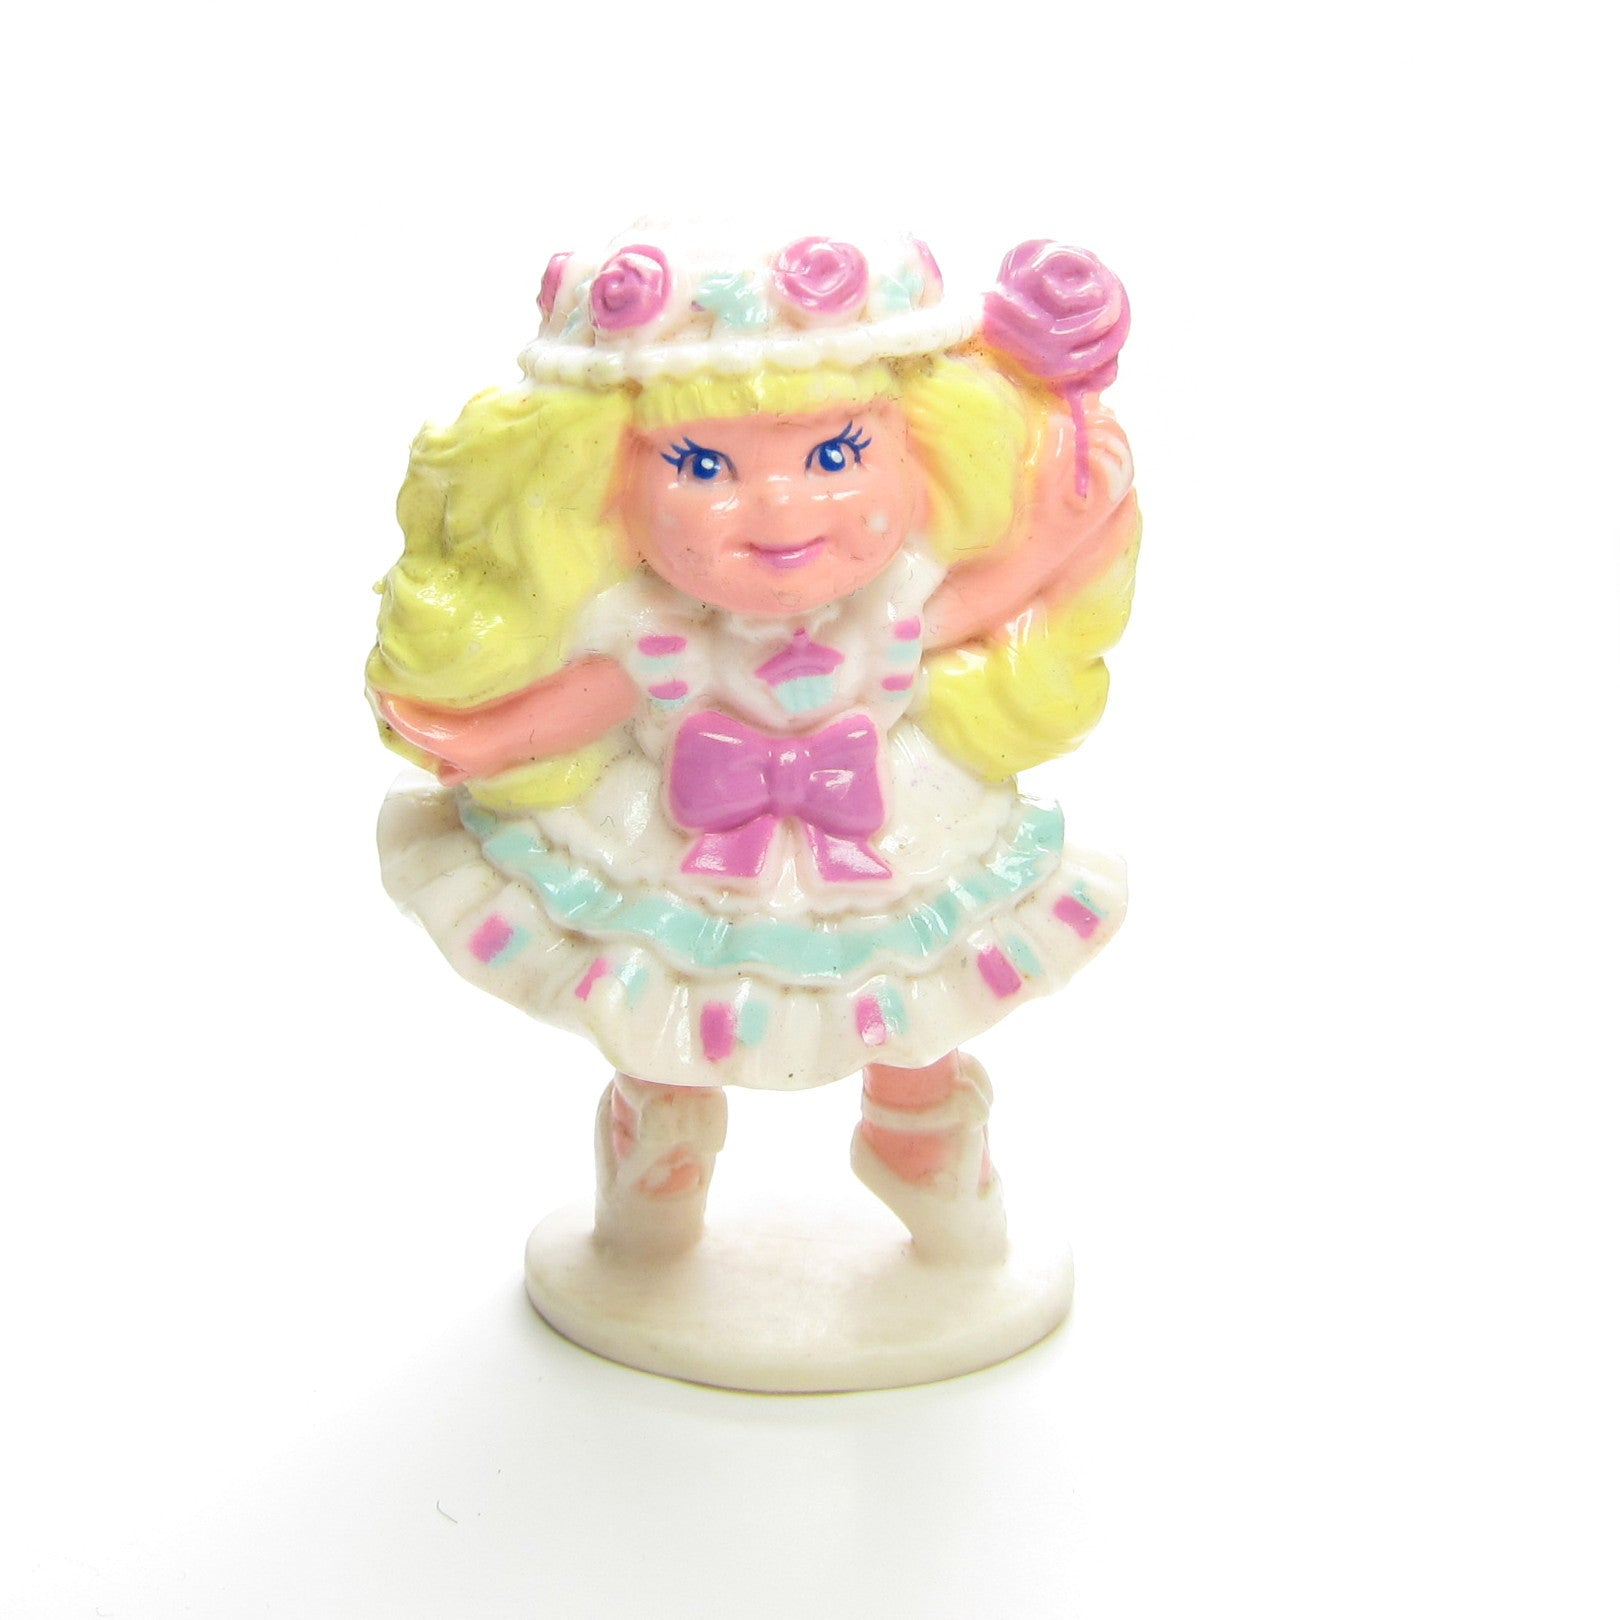 Lily Vanilly Cherry Merry Muffin miniature figurine